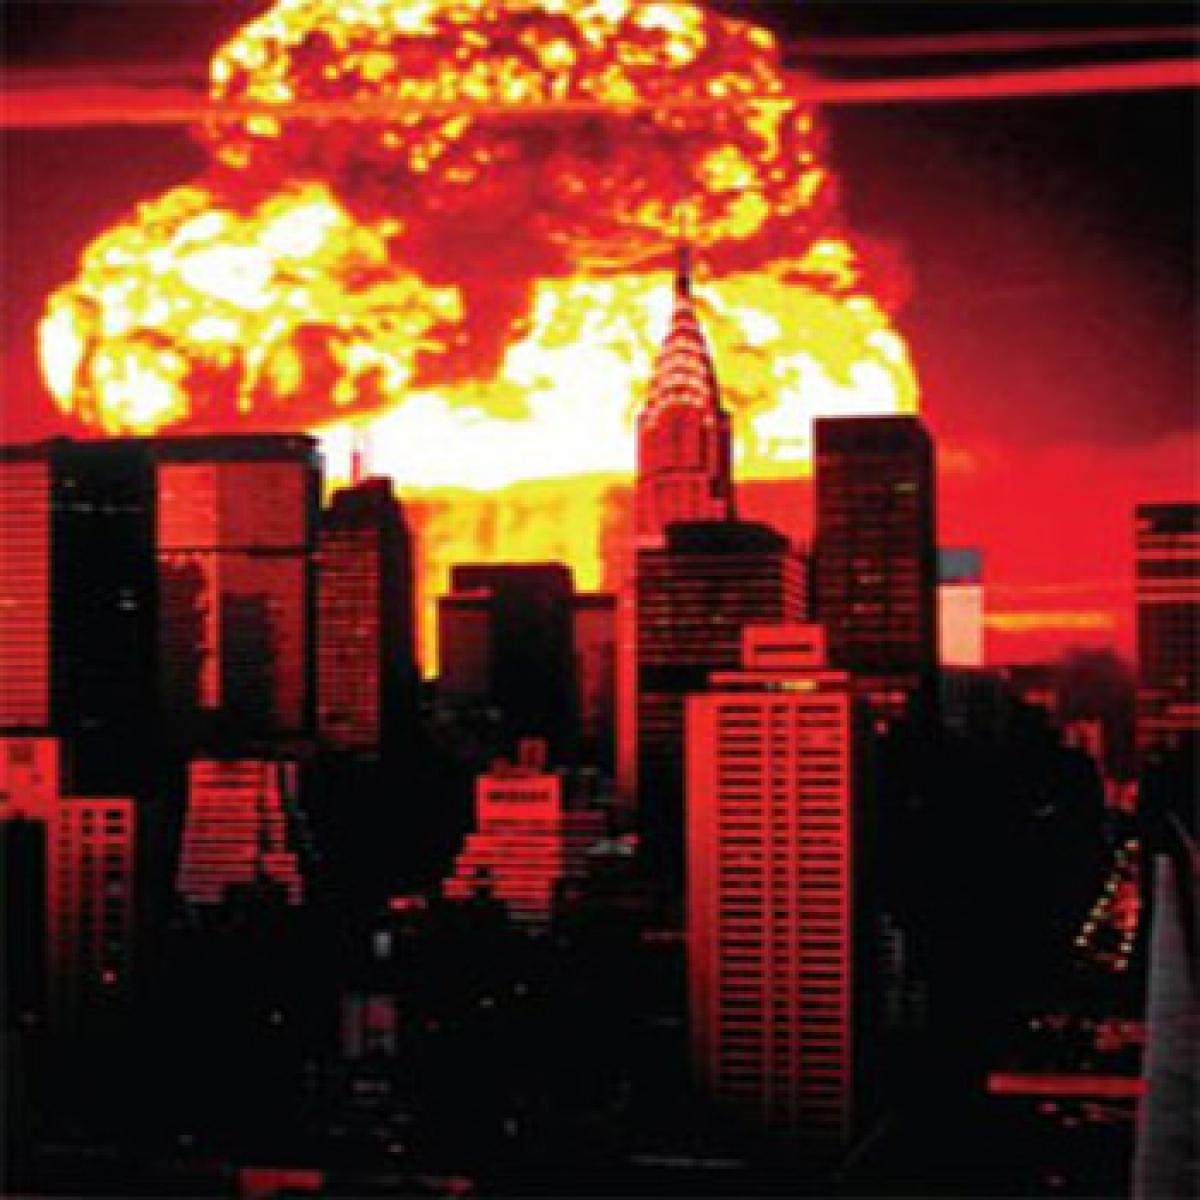 Looming threat of nuclear terrorism